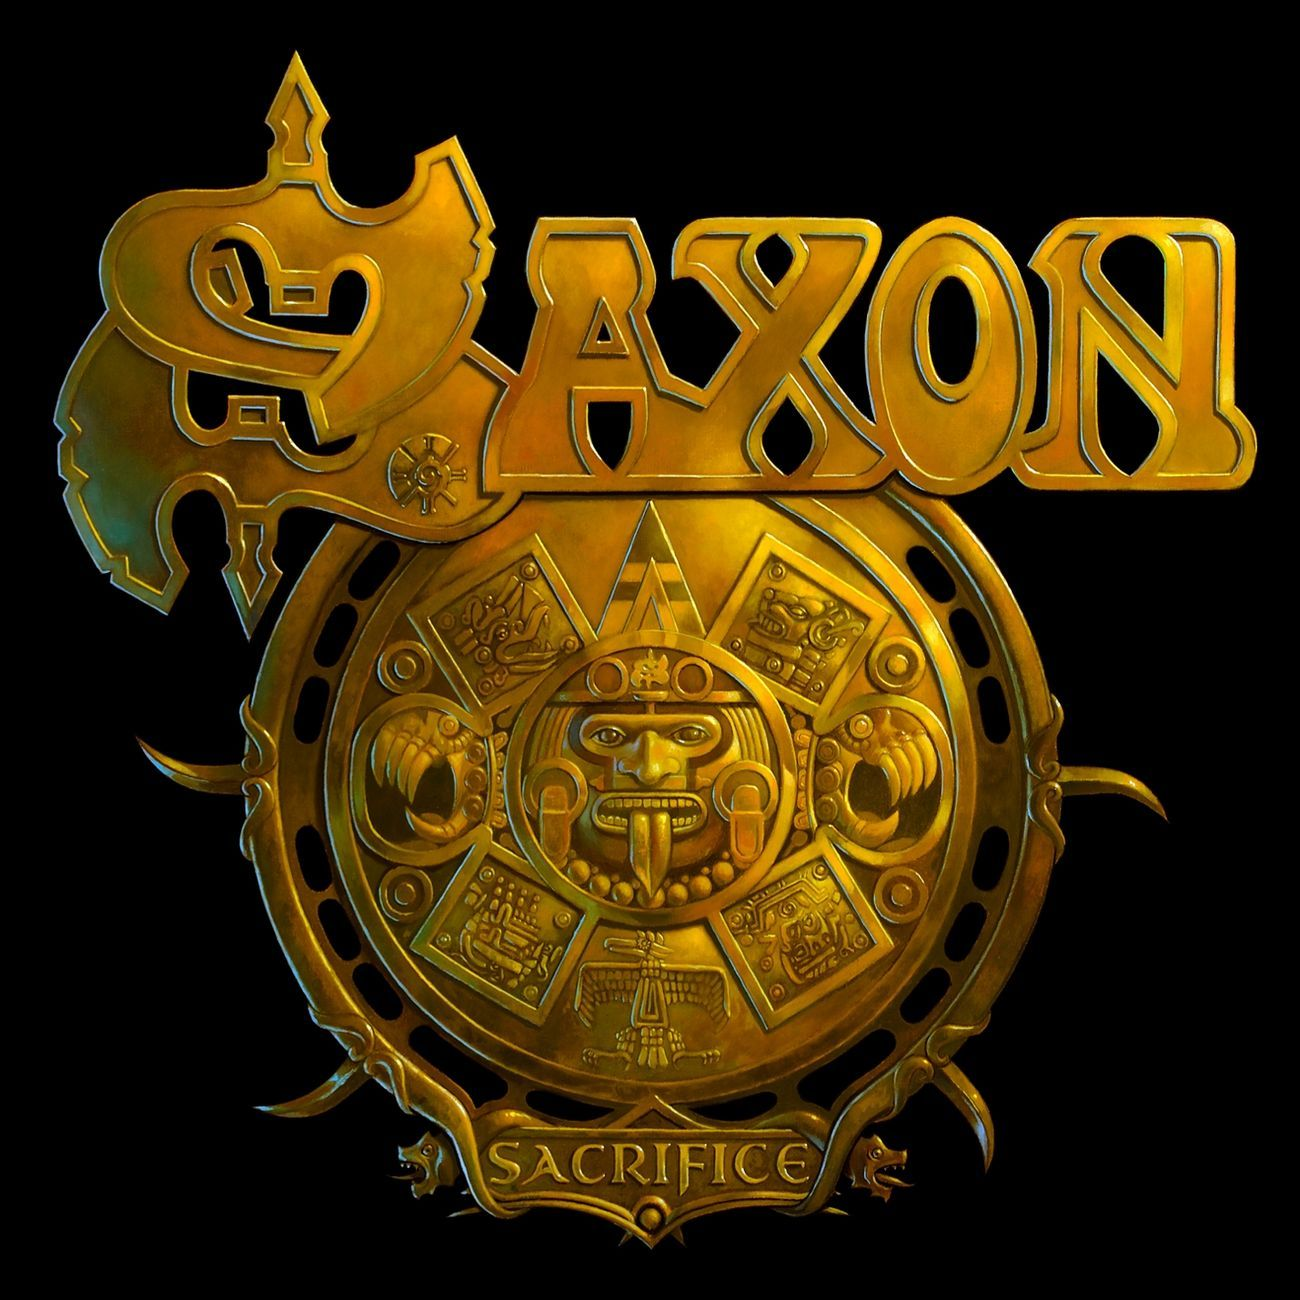 Saxon - Sacrifice album cover